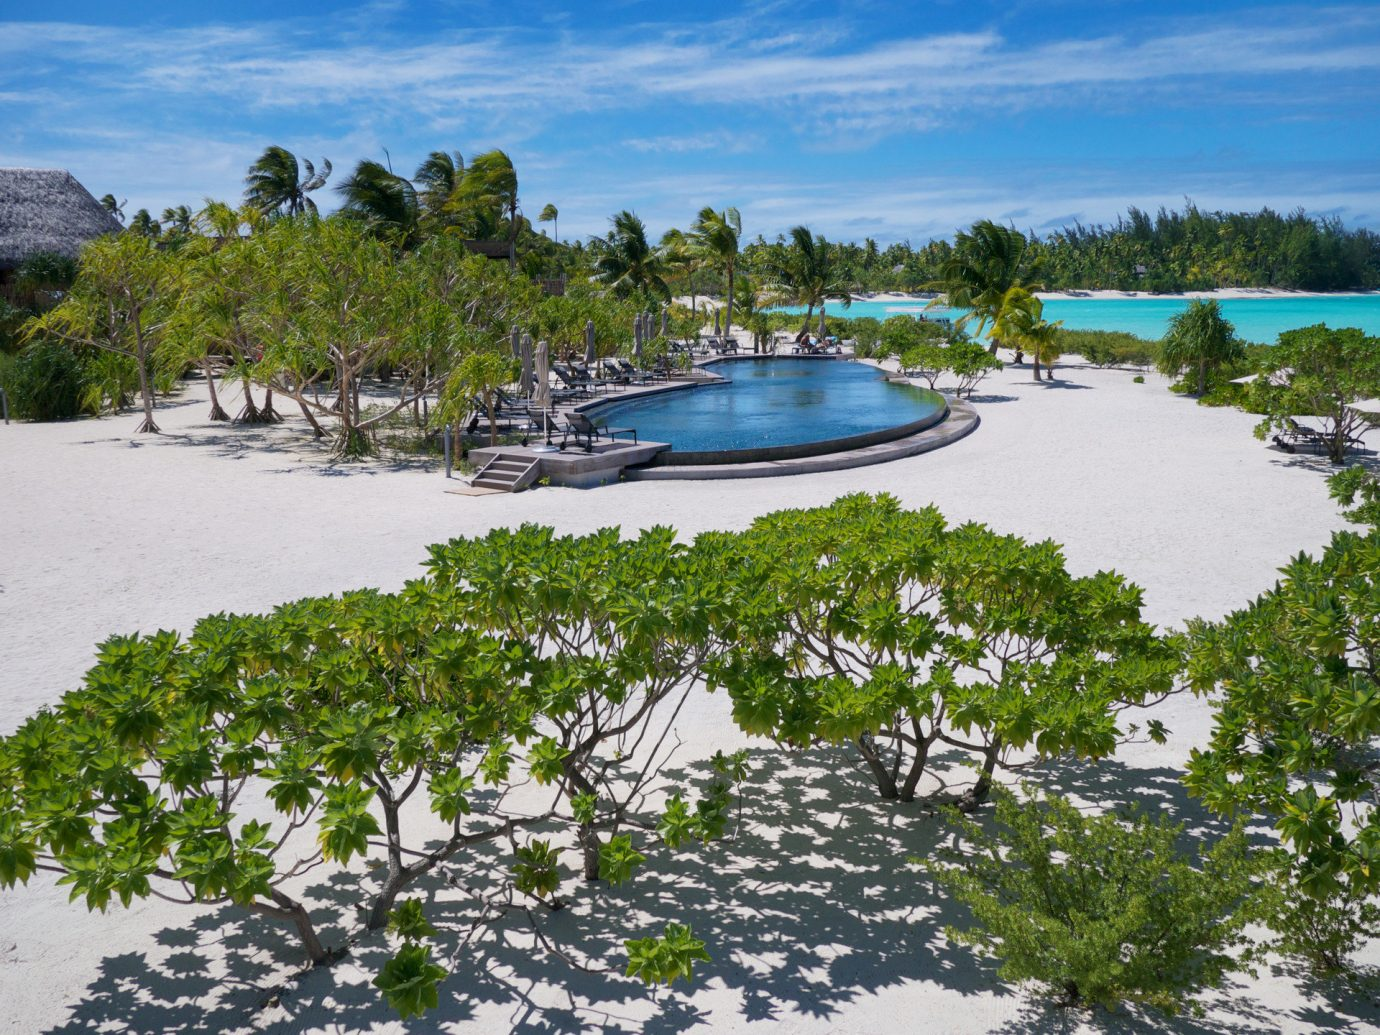 Beach calm Greenery Hotels isolation Luxury Ocean palm trees Pool private remote serene trees Tropical turquoise white sands tree outdoor sky water shore ecosystem Nature Resort vacation Sea bay Coast Lagoon cove Lake Island marina archipelago lined